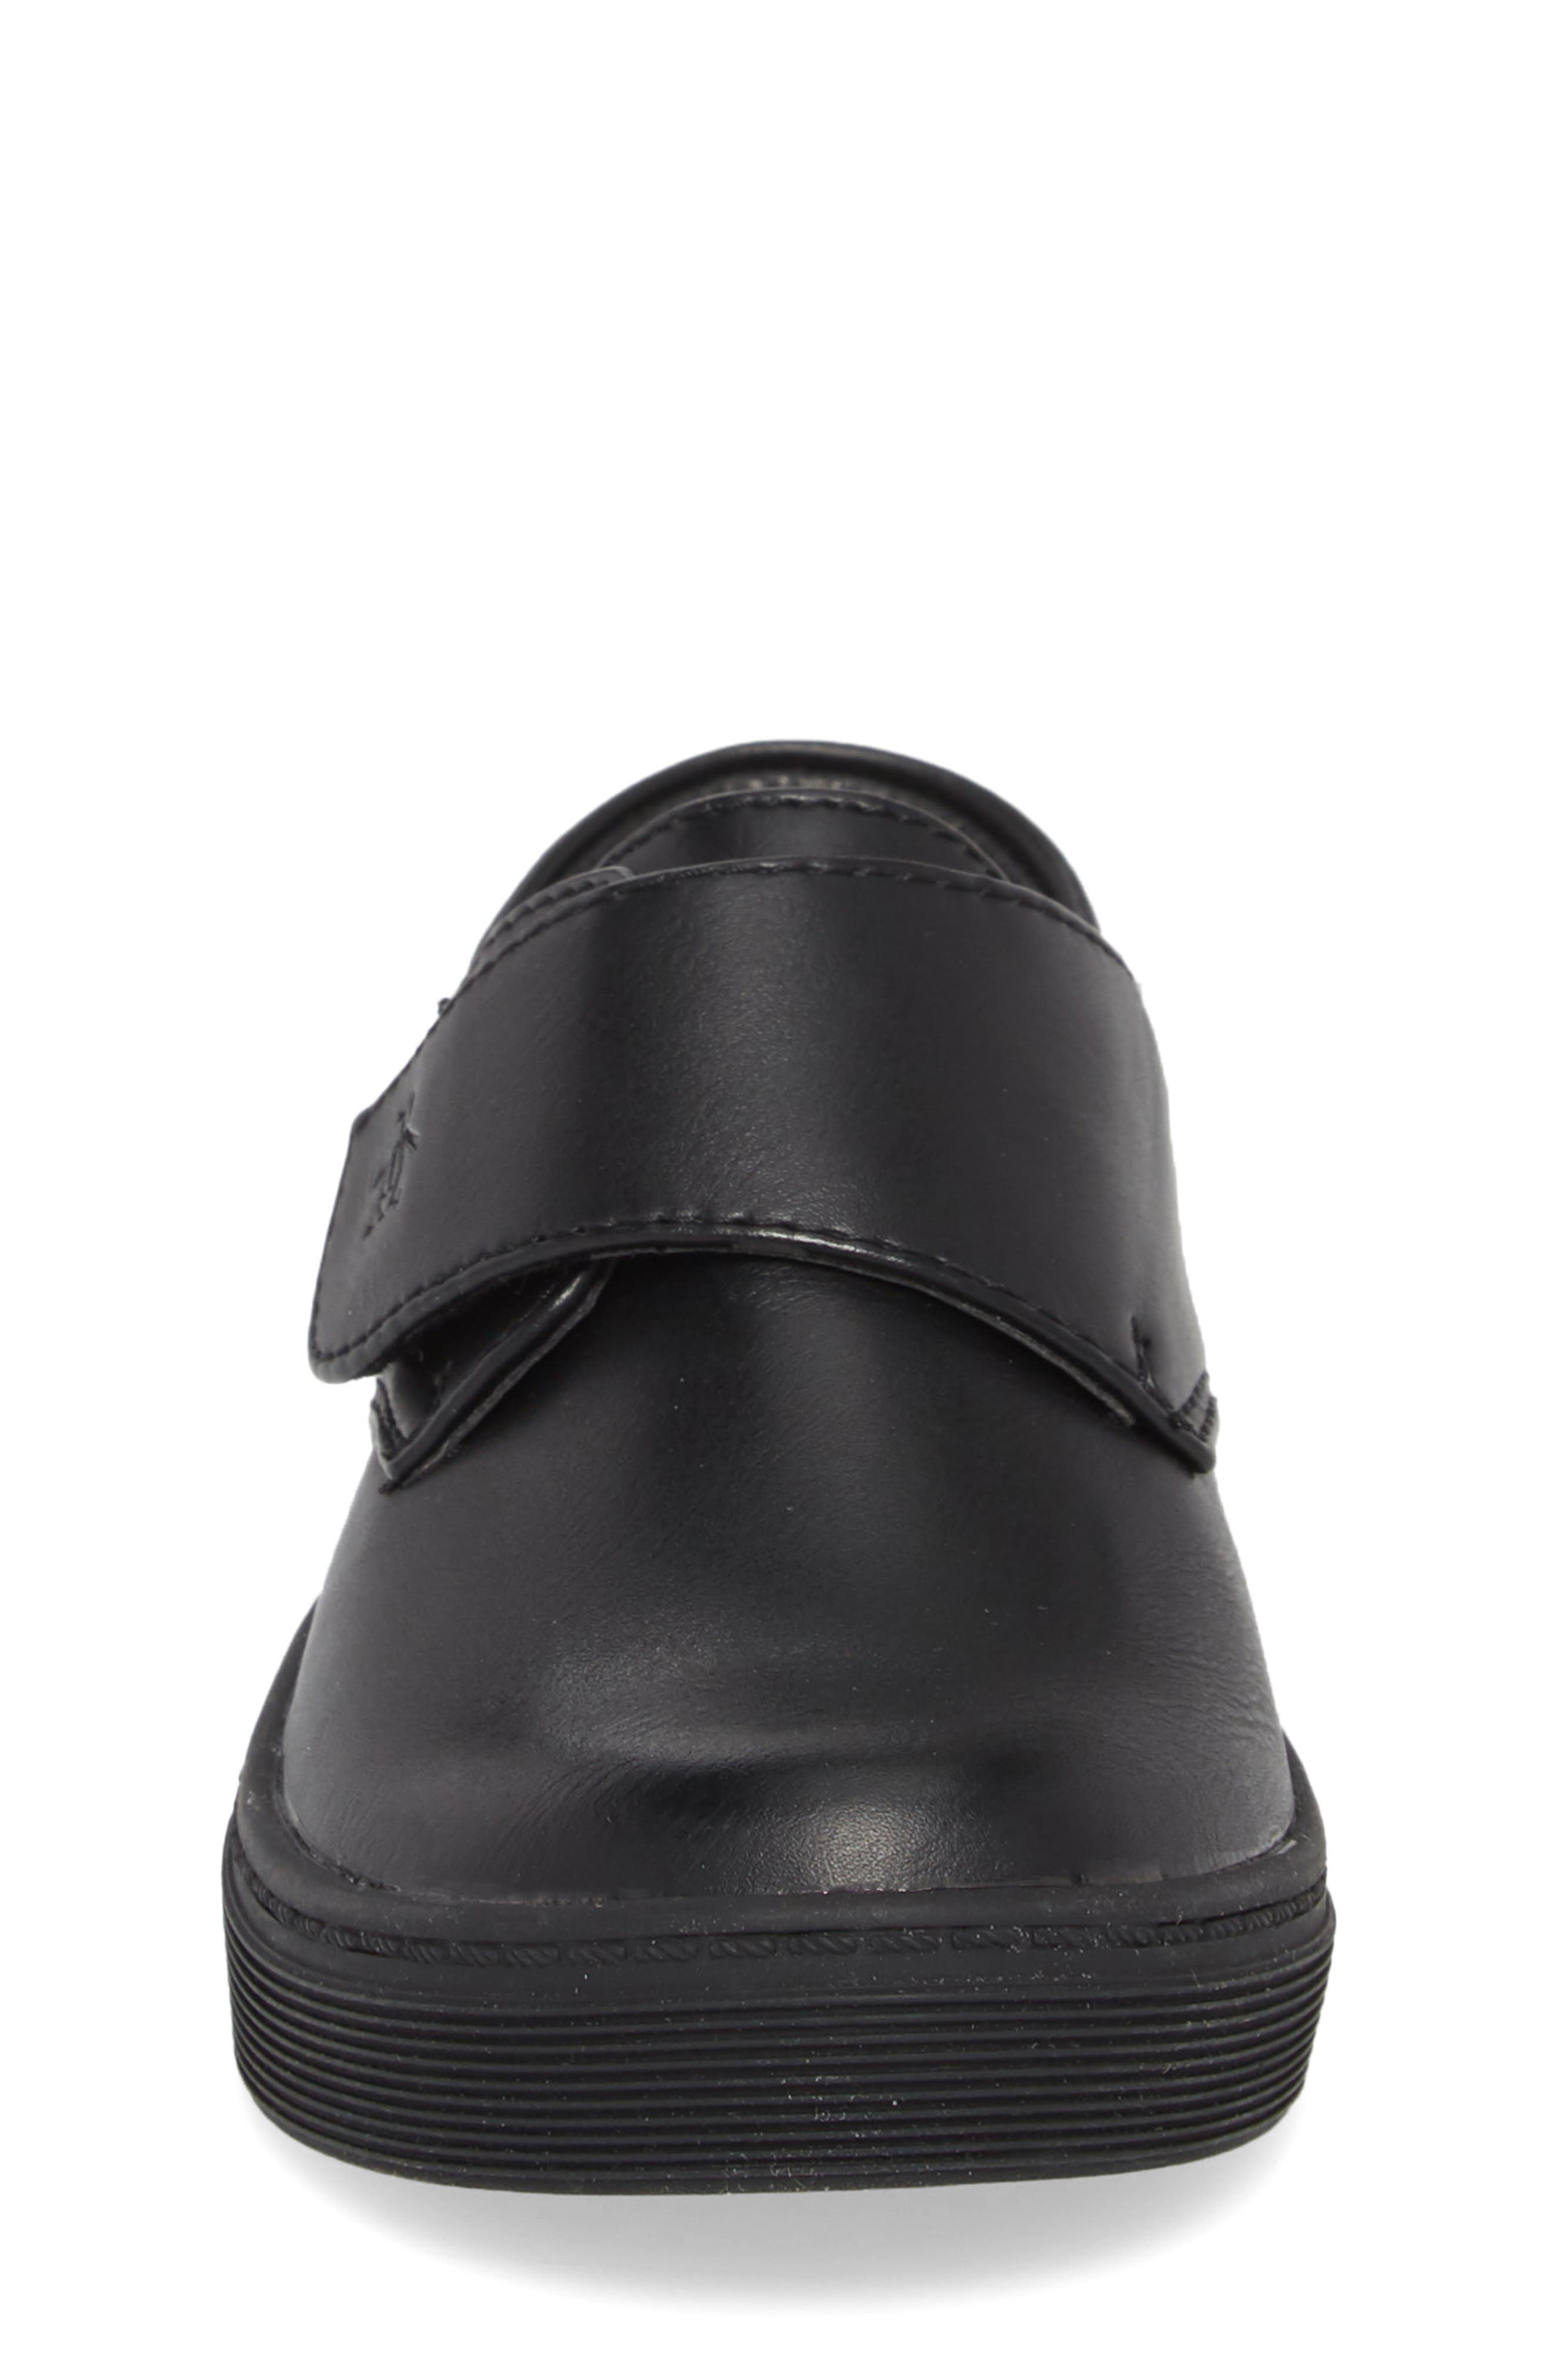 Felton Sneaker,                             Alternate thumbnail 4, color,                             Black/ Black